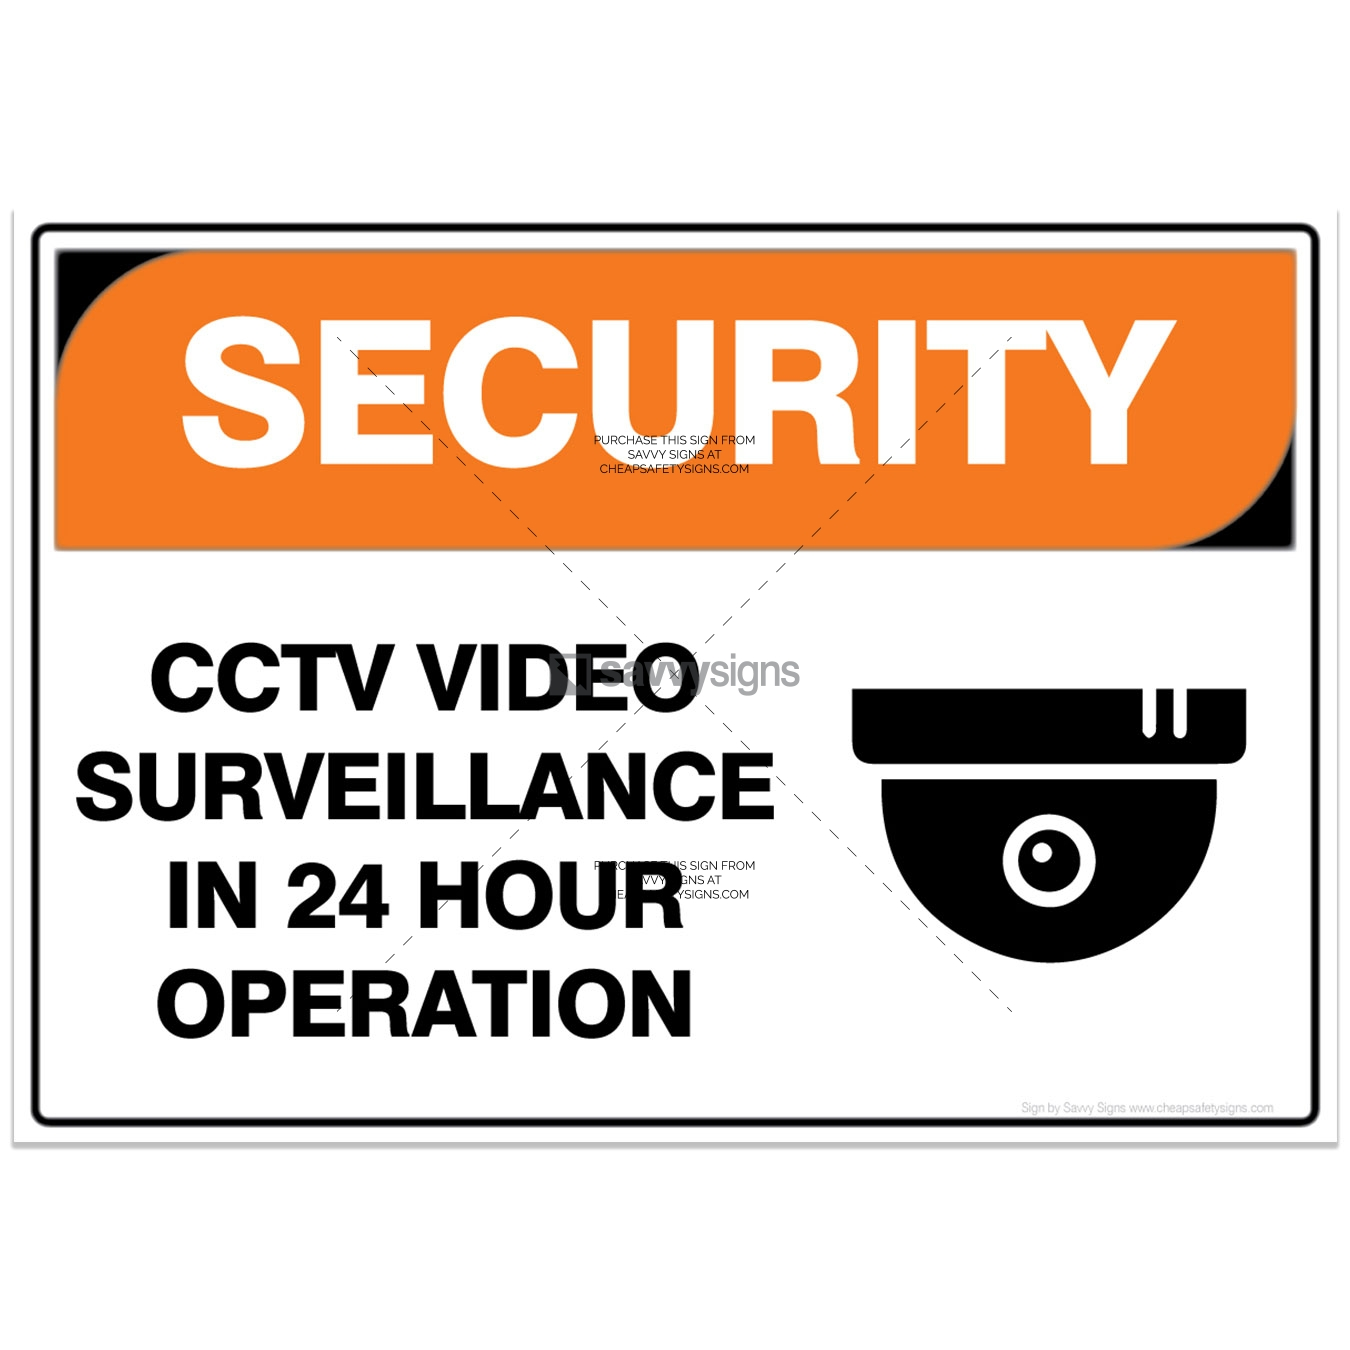 SSSEC3007-SECURITY-Workplace-Safety-Signs_Savvy-Signs_v3